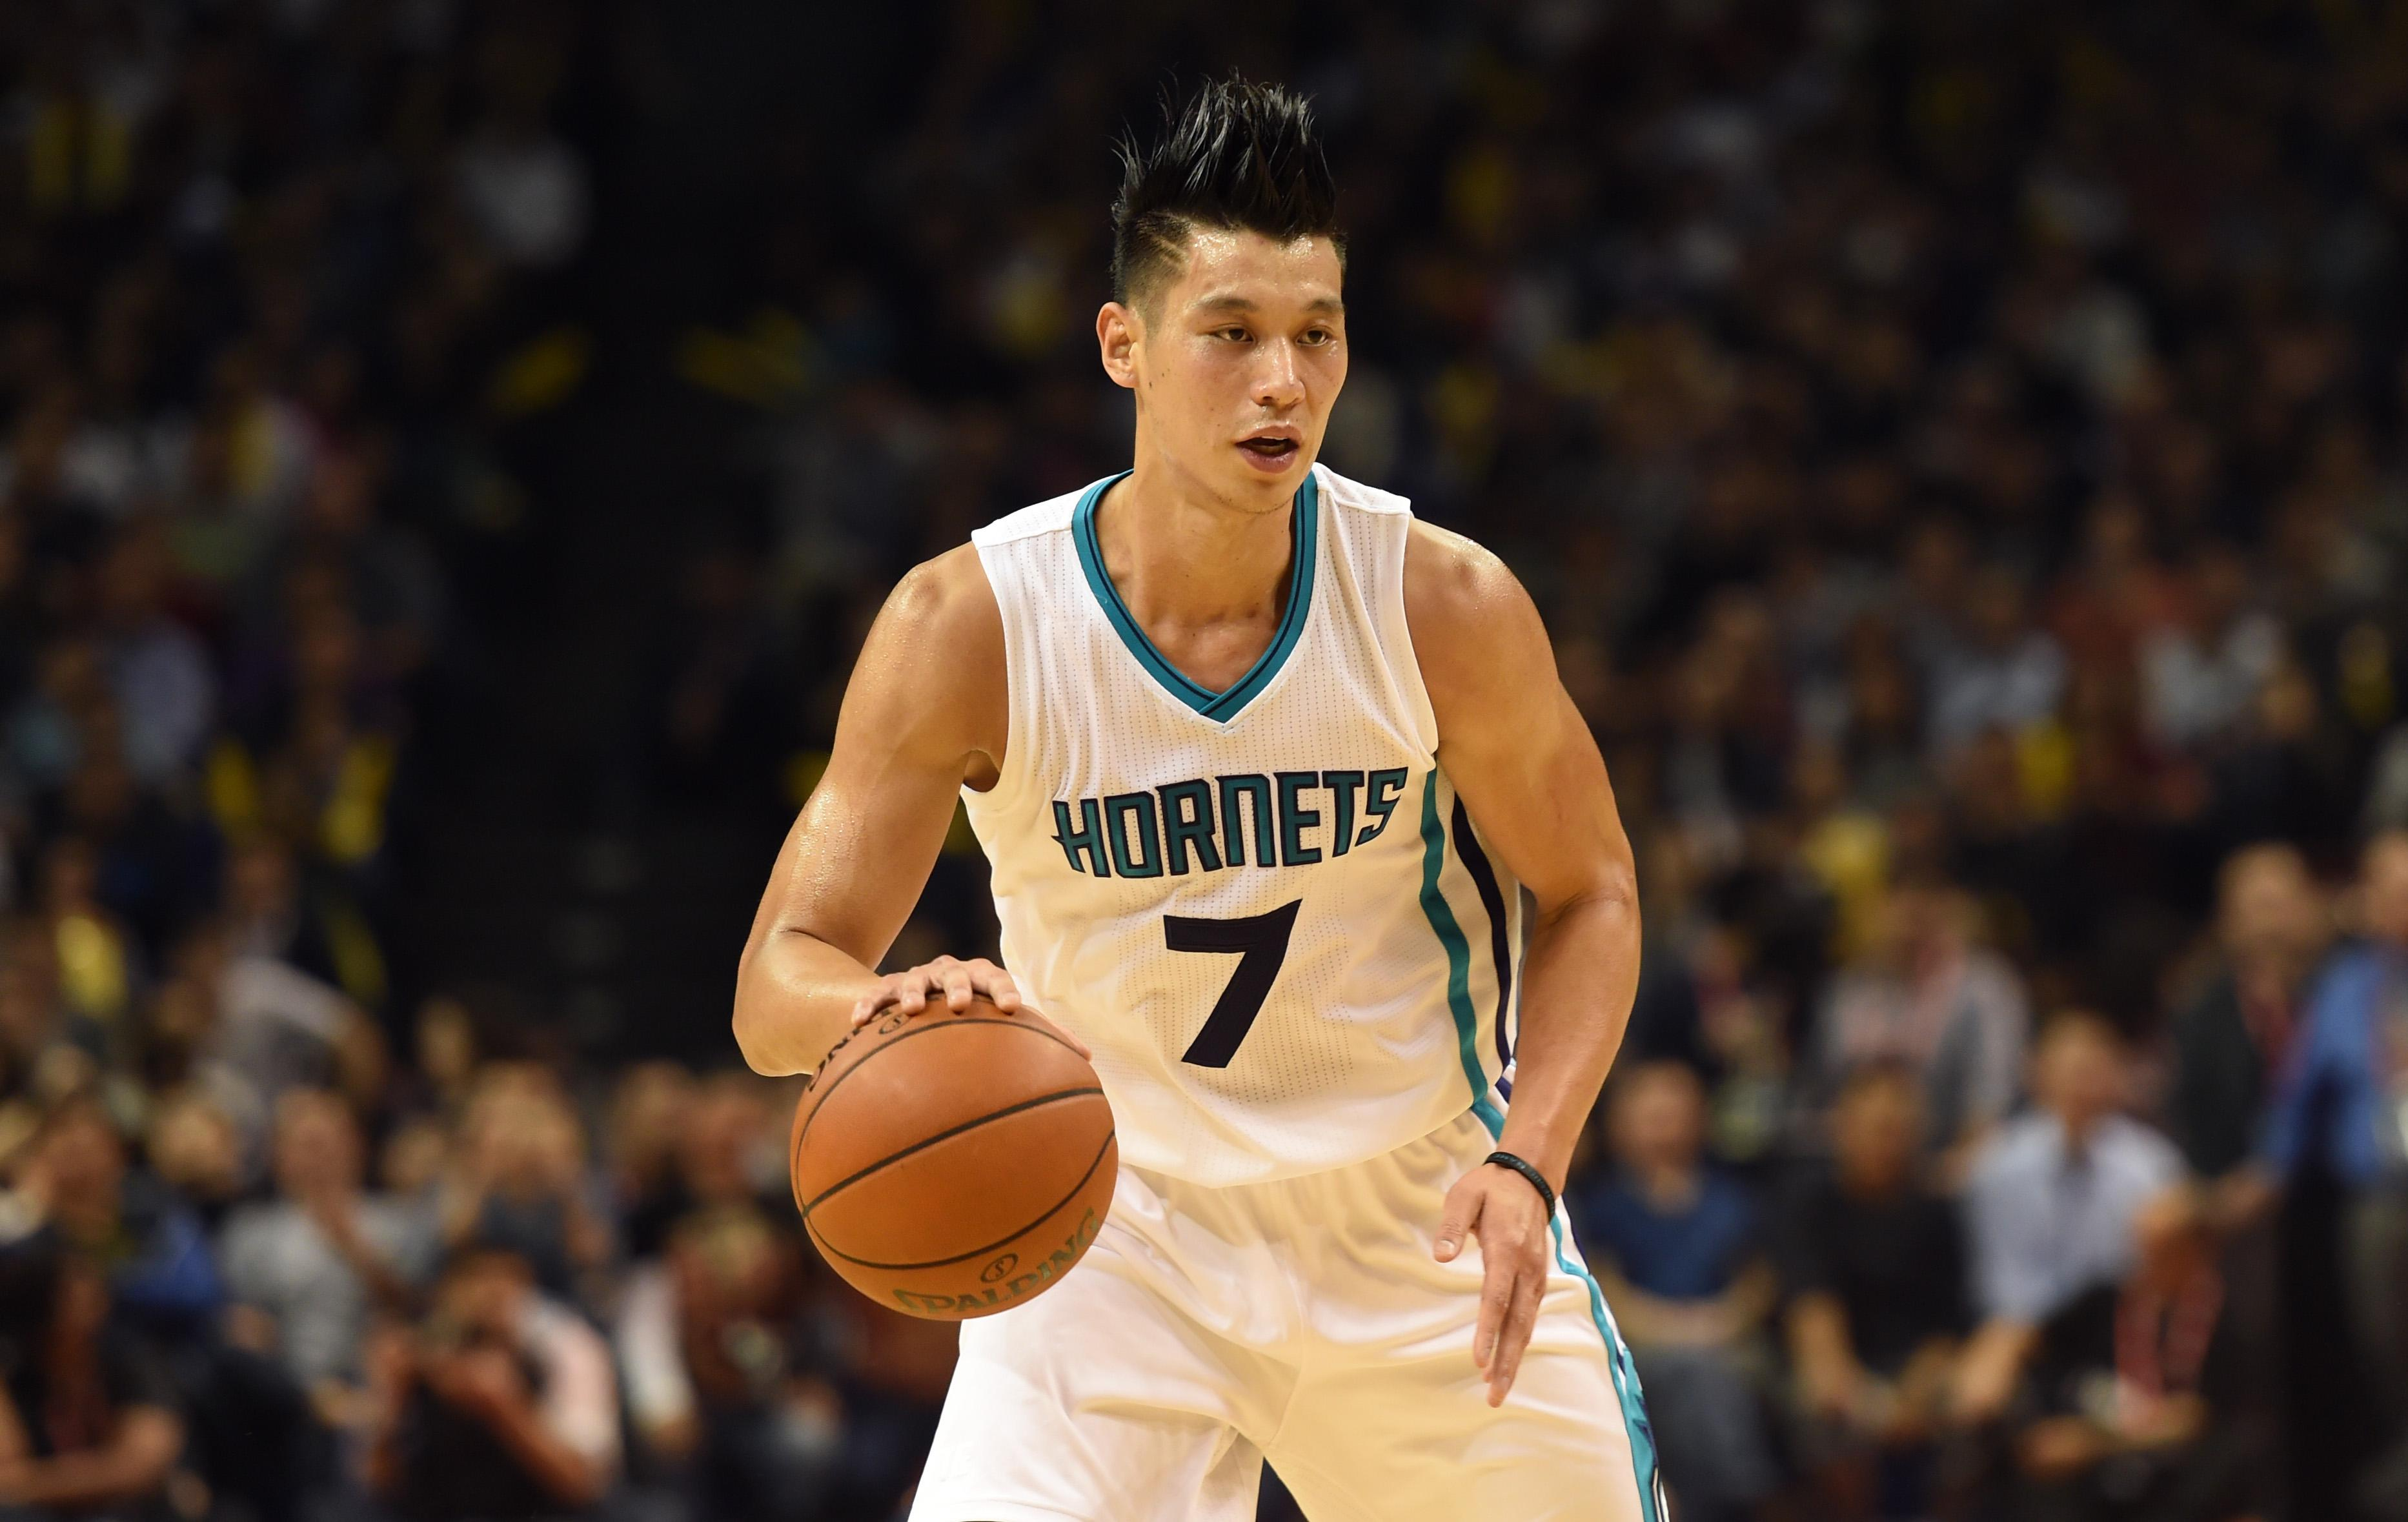 cheaper 53771 a9a97 Basket - Jeremy Lin leads Hornets to victory in Shanghai